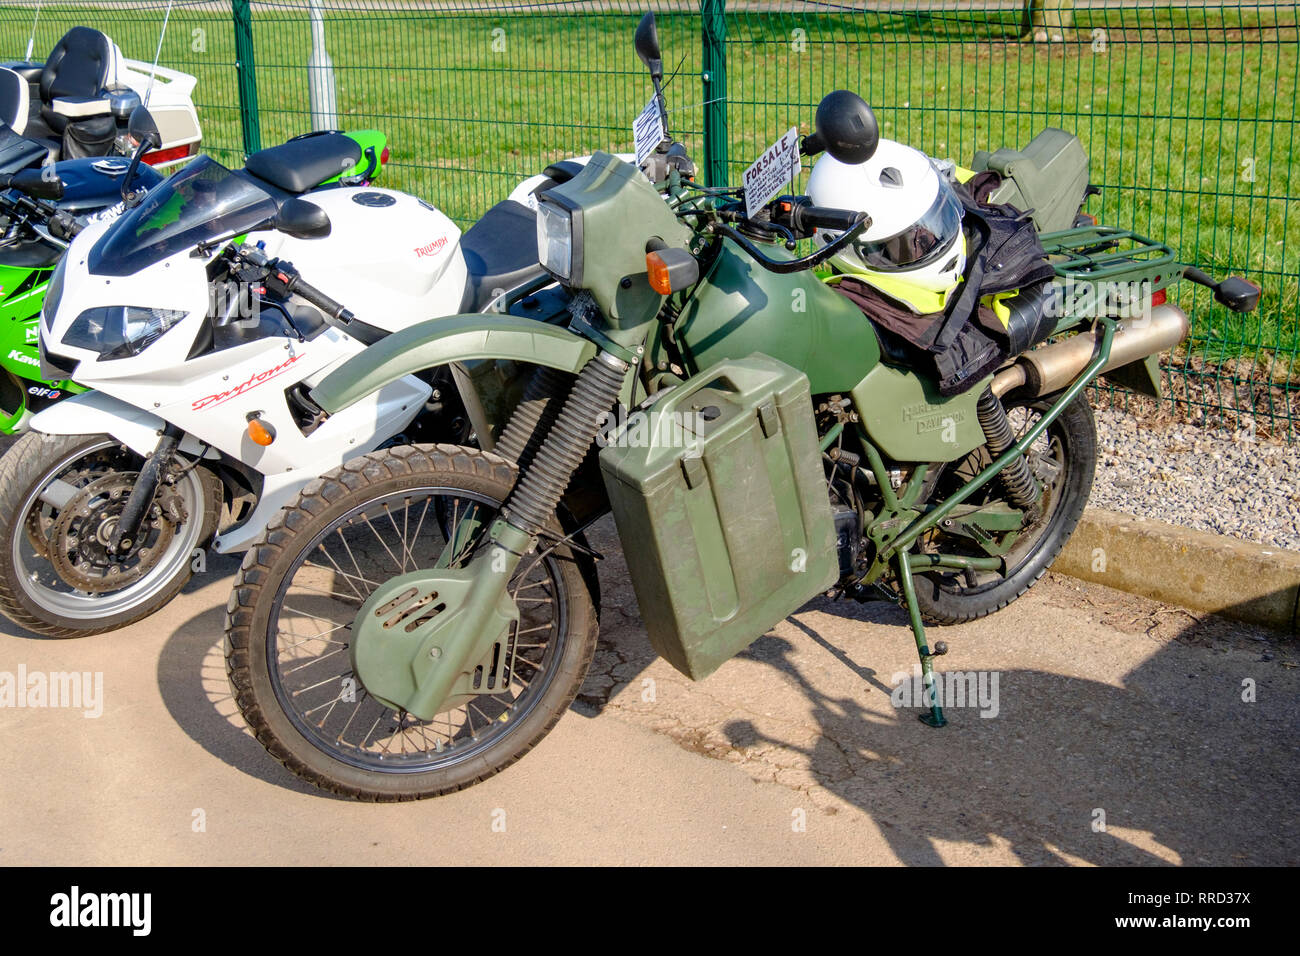 Army Bike High Resolution Stock Photography And Images Alamy